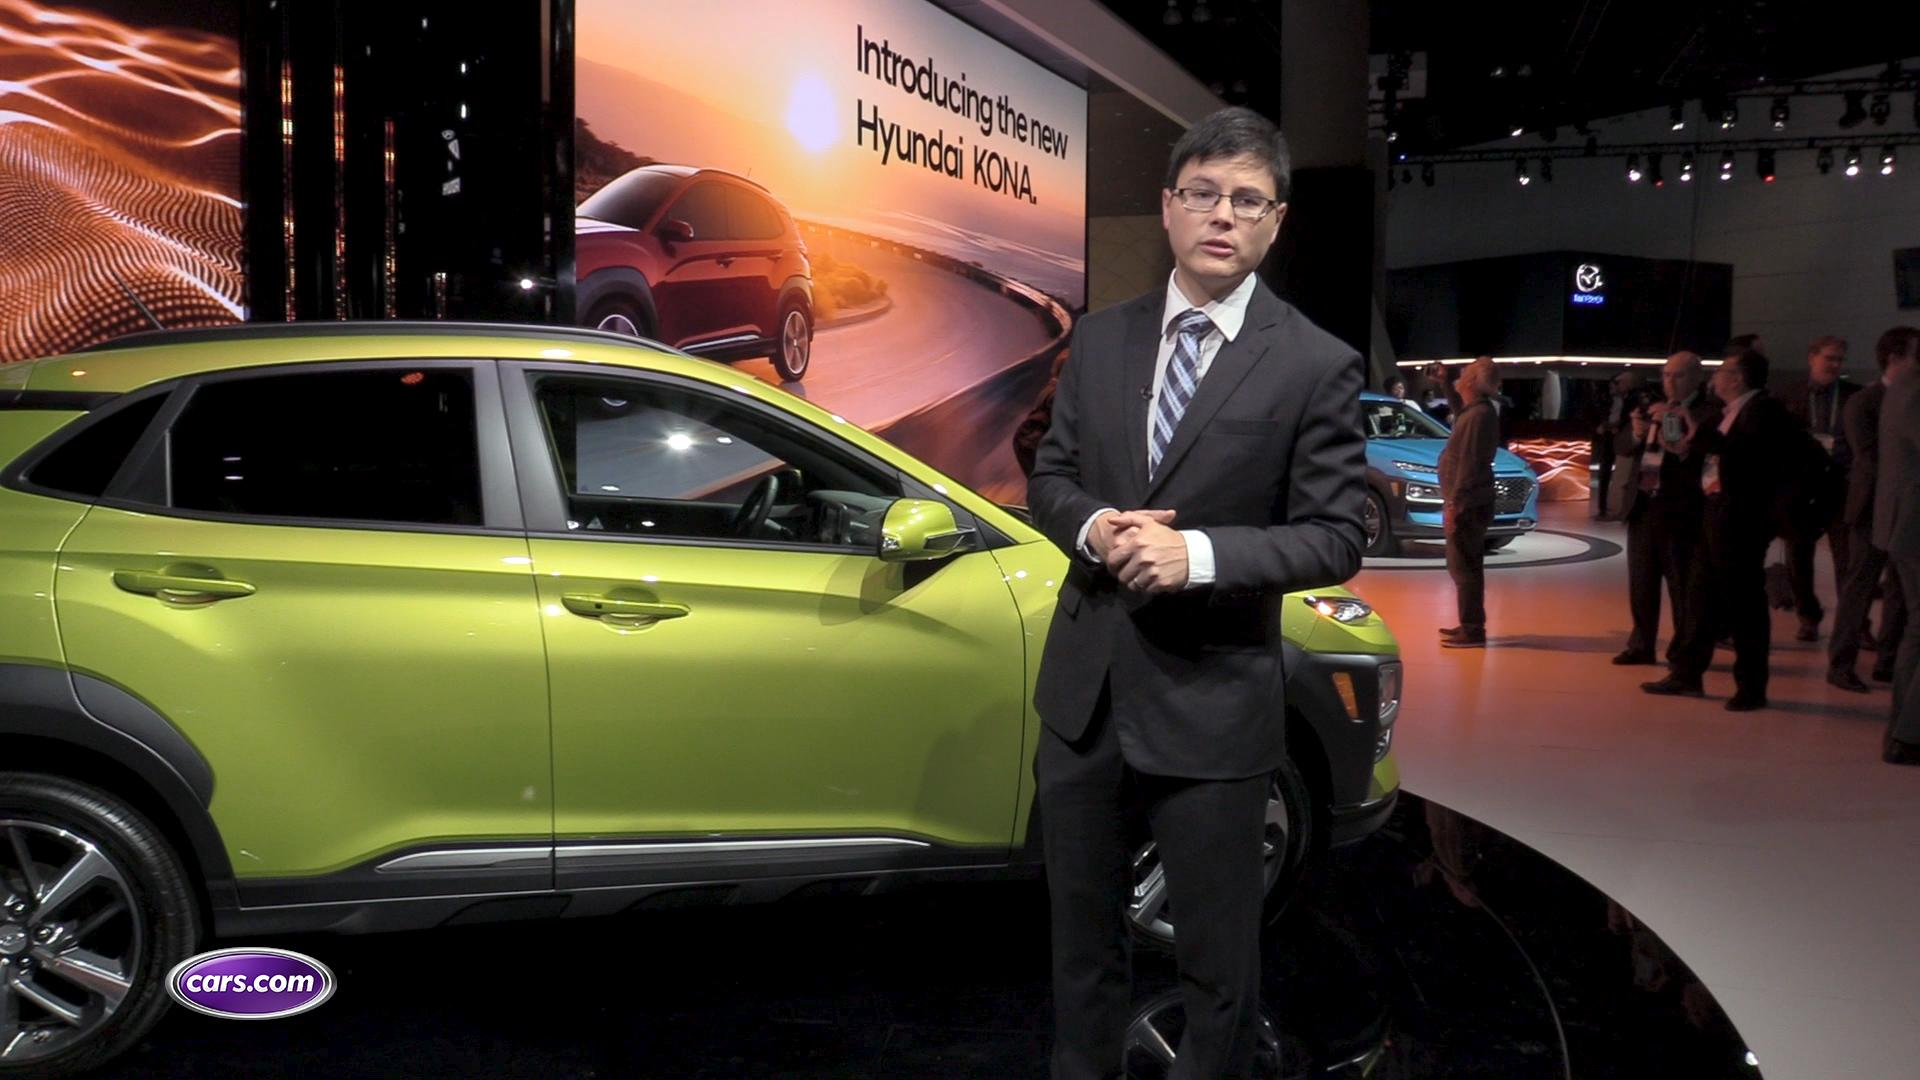 Video: 2018 Hyundai Kona: First Look — Cars.com